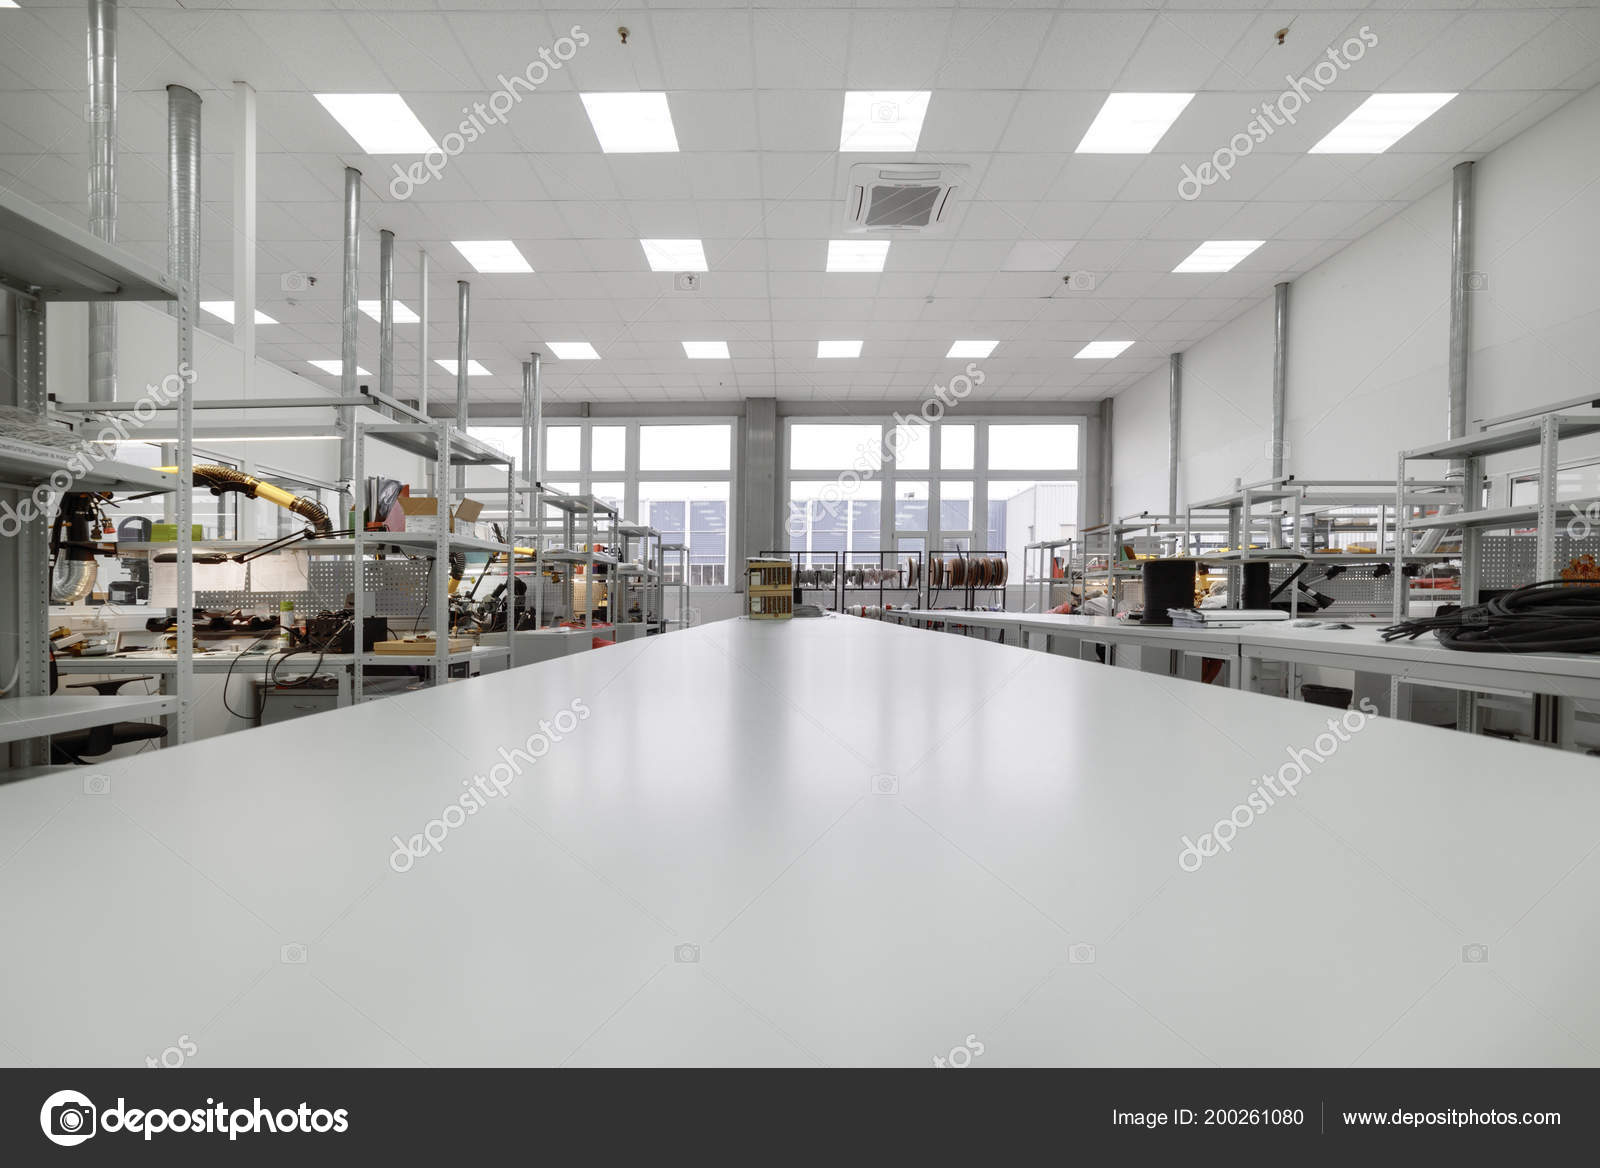 Factory For The Manufacture Of Electronic Printed Circuit Boards Board Fabrication And Assembly Industrial Electronics Shop Components Photo By Nordroden